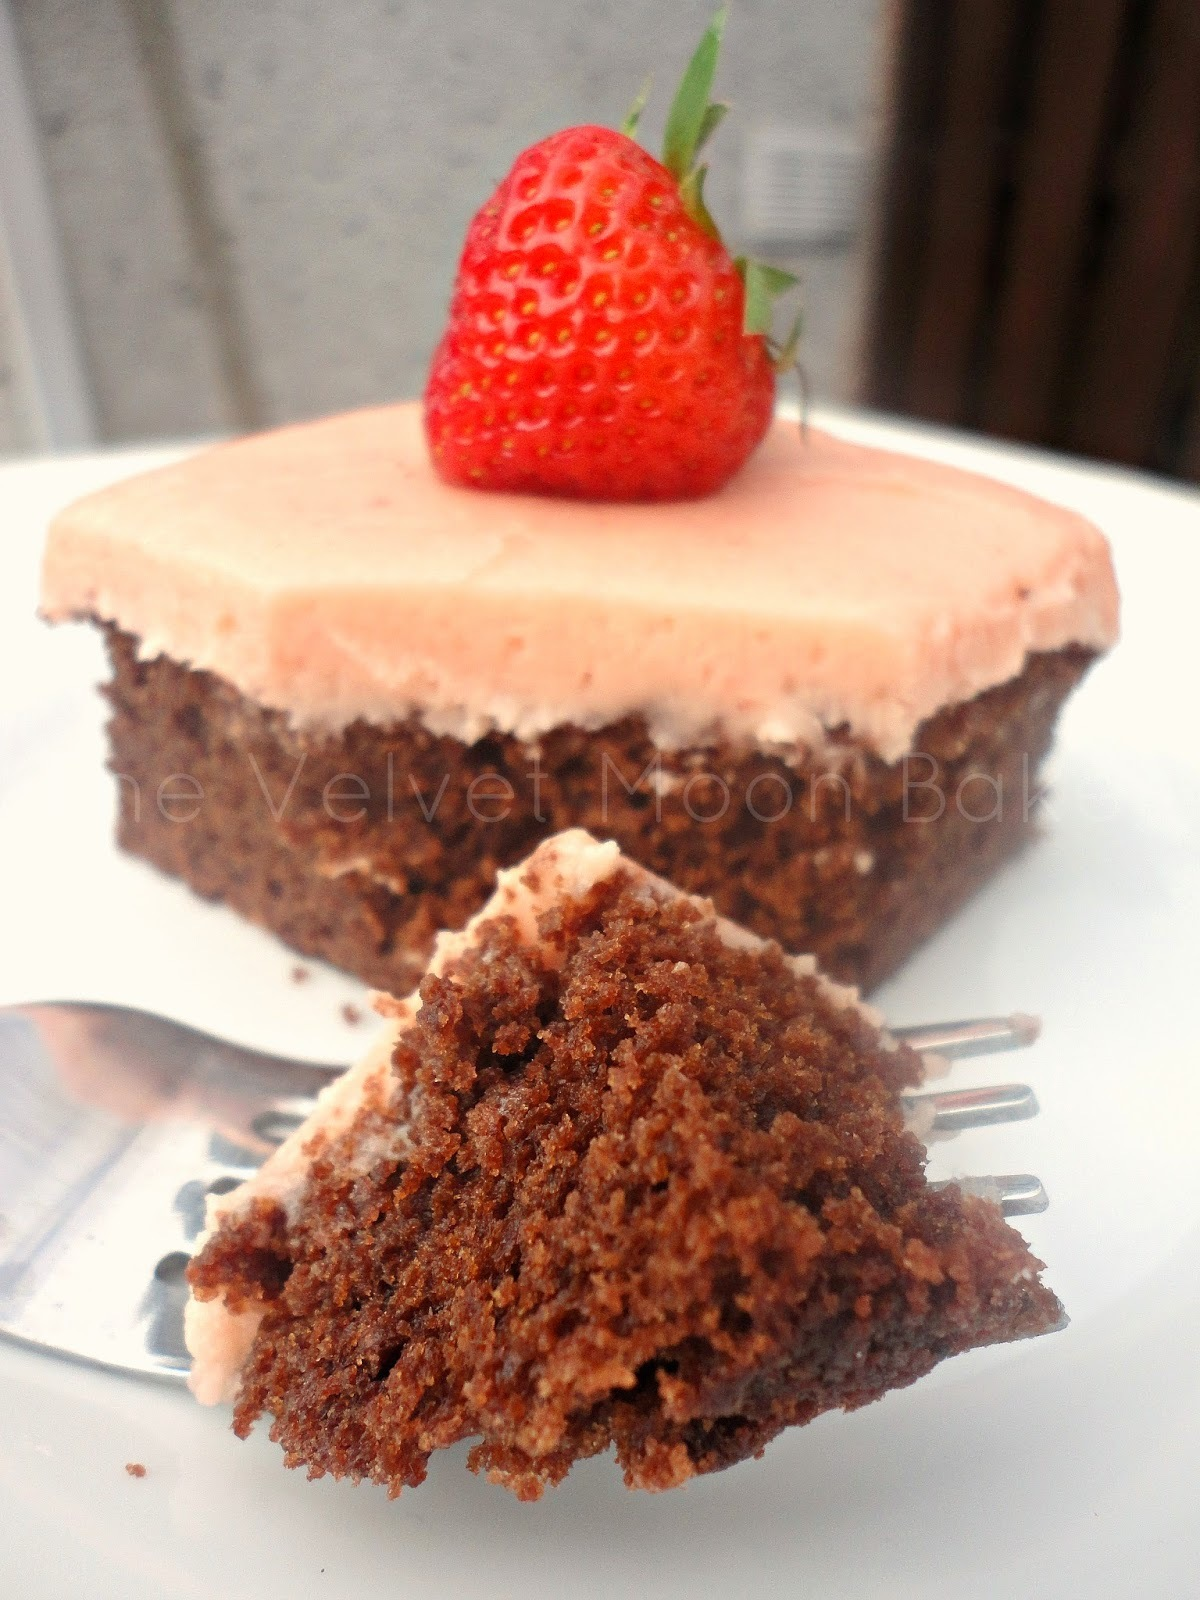 Chocolate Cola Cake with Strawberry Buttercream